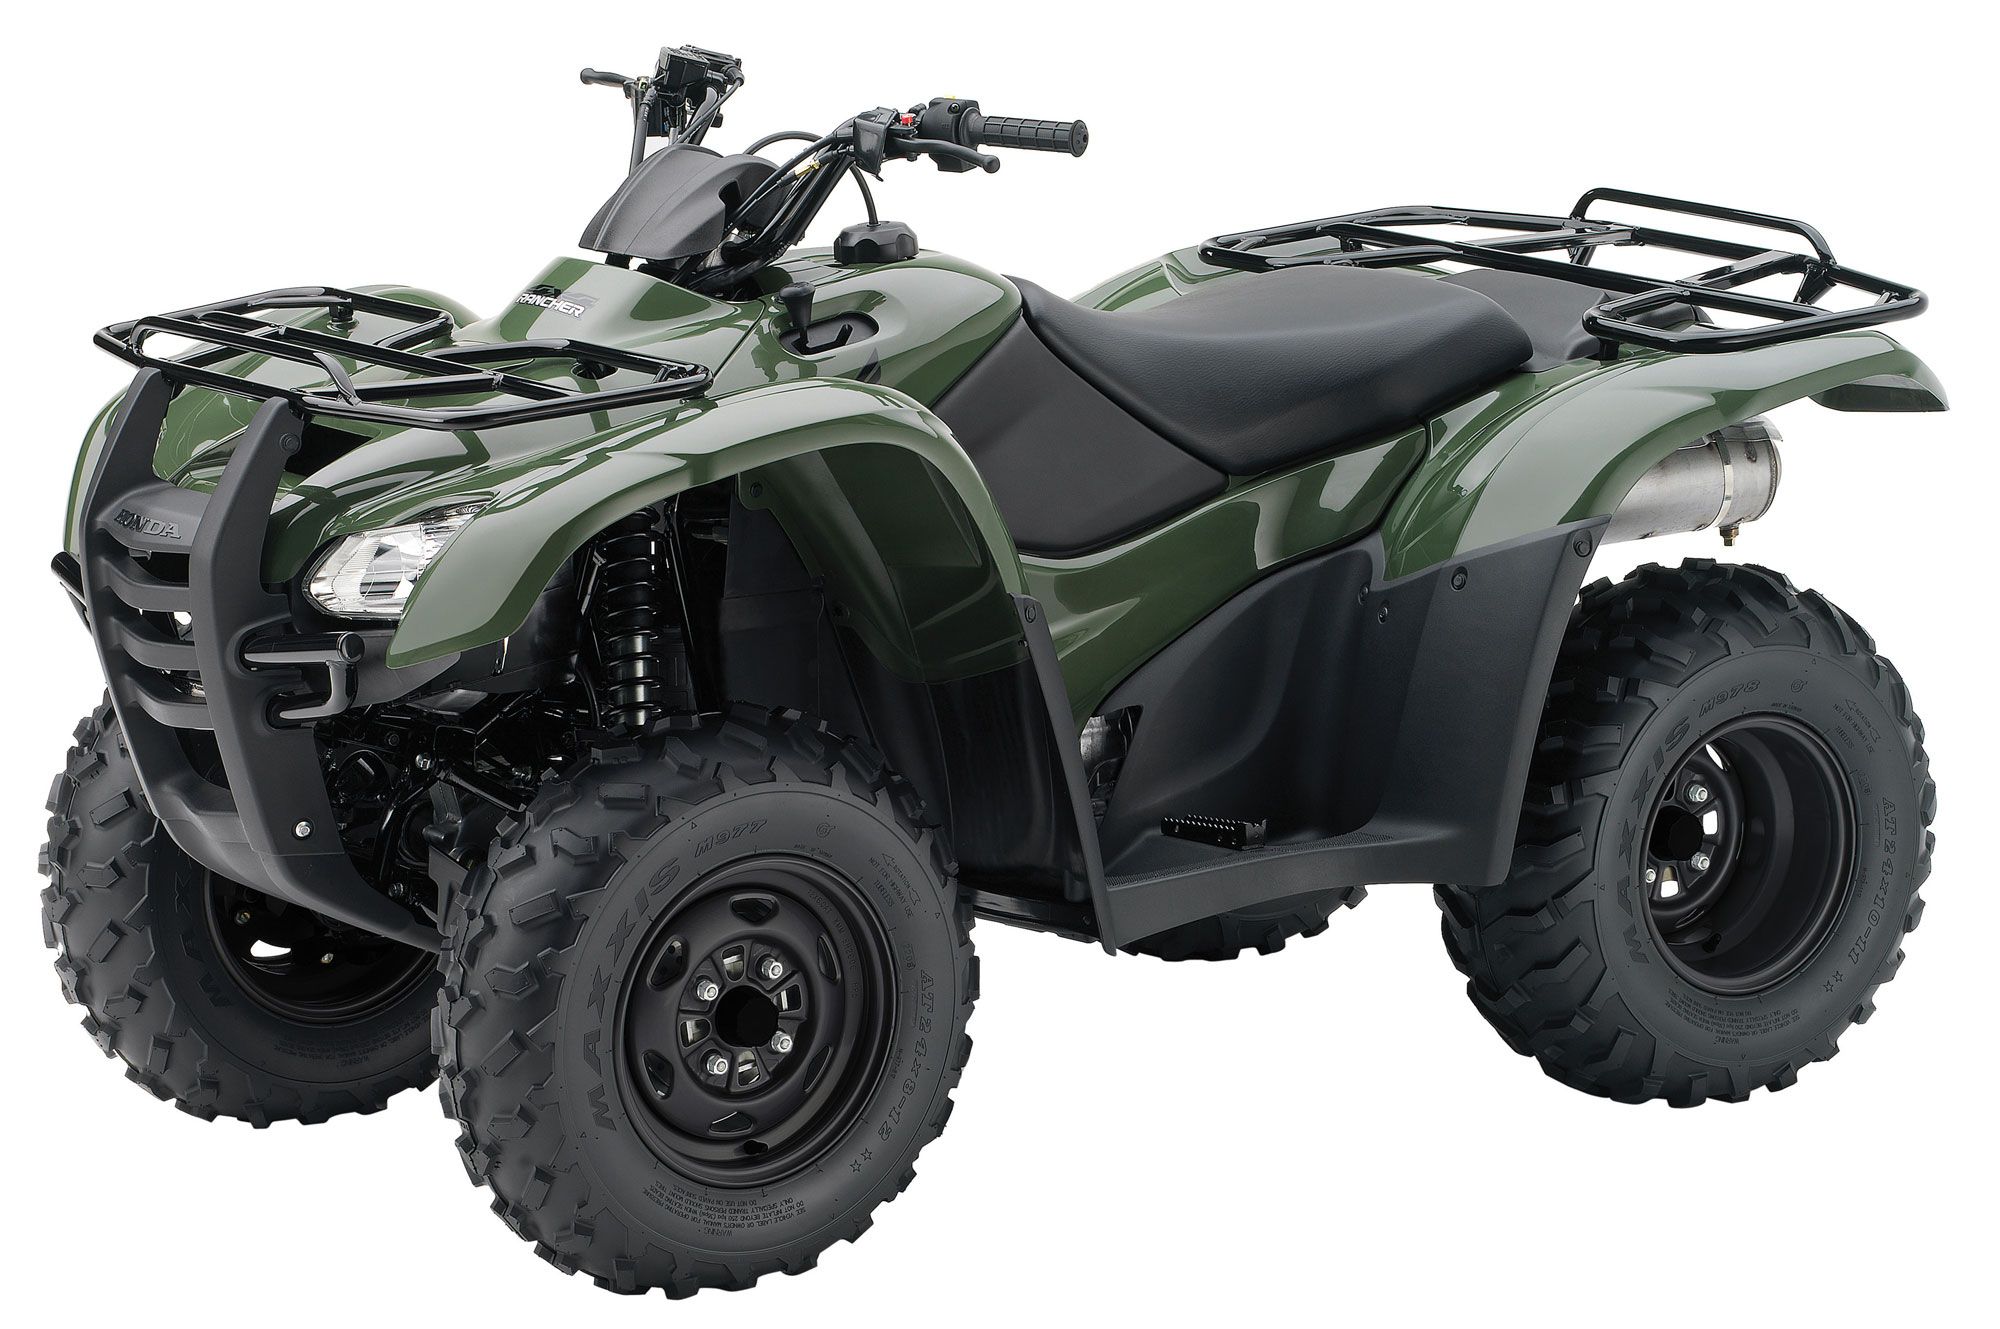 honda fourtrax rancher 4x4 trx420fm specs 2012 2013 autoevolution. Black Bedroom Furniture Sets. Home Design Ideas